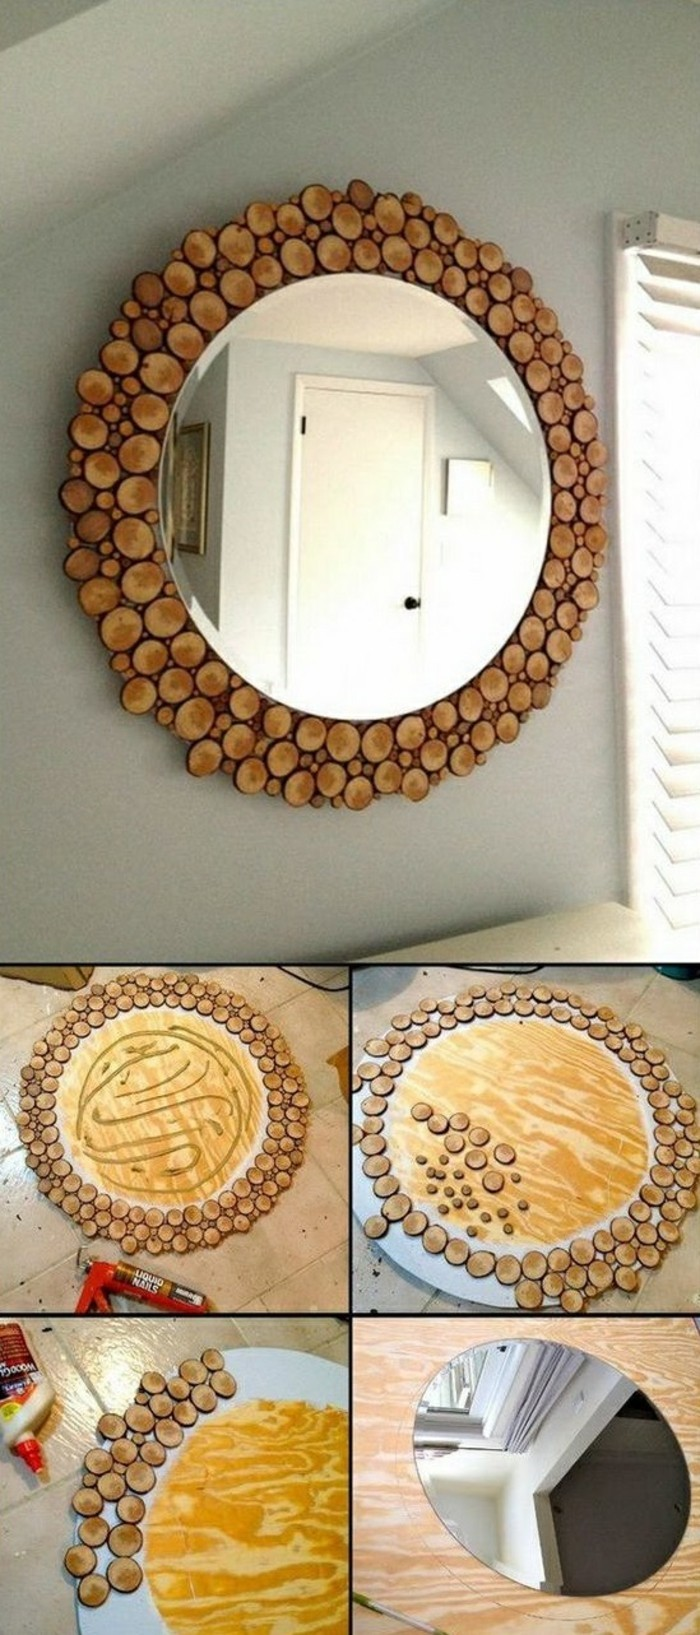 decorate-cork decorating ideas mirror-